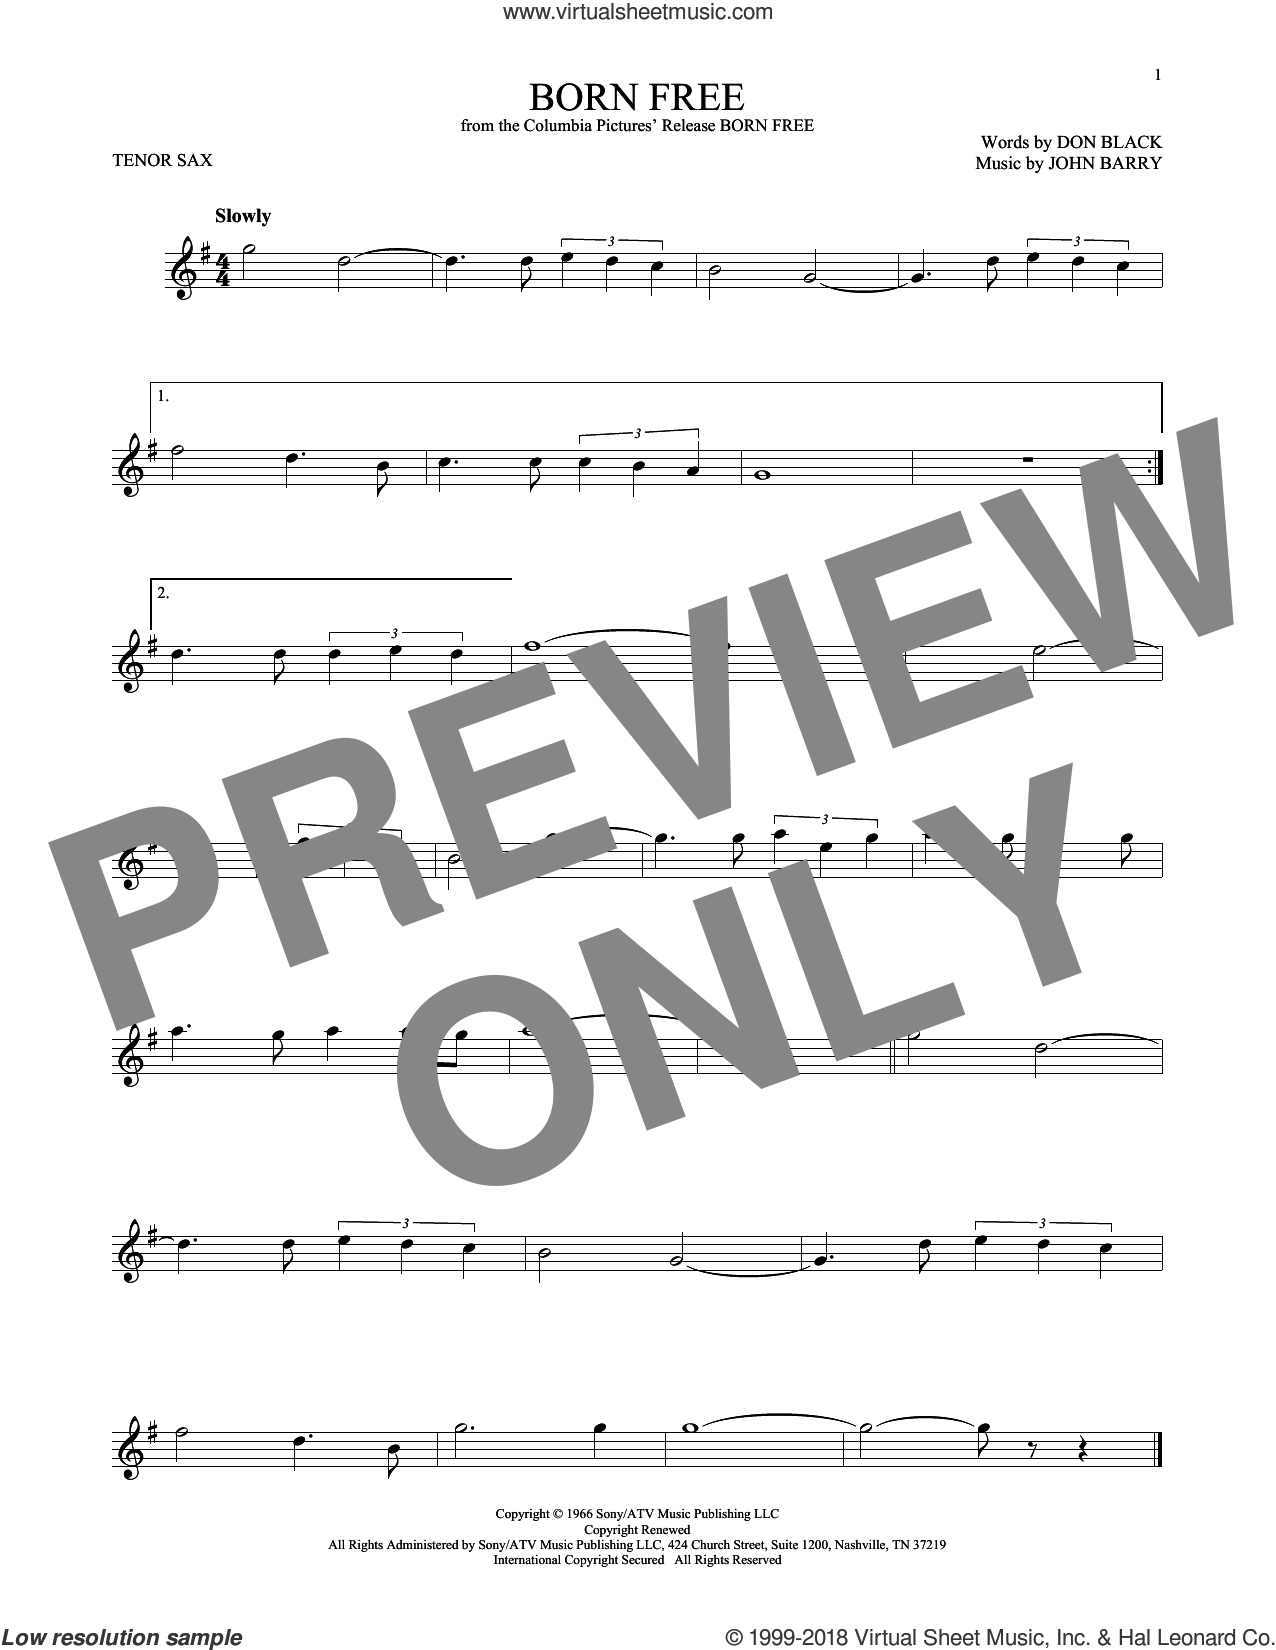 Born Free sheet music for tenor saxophone solo by Don Black, Roger Williams and John Barry, intermediate skill level